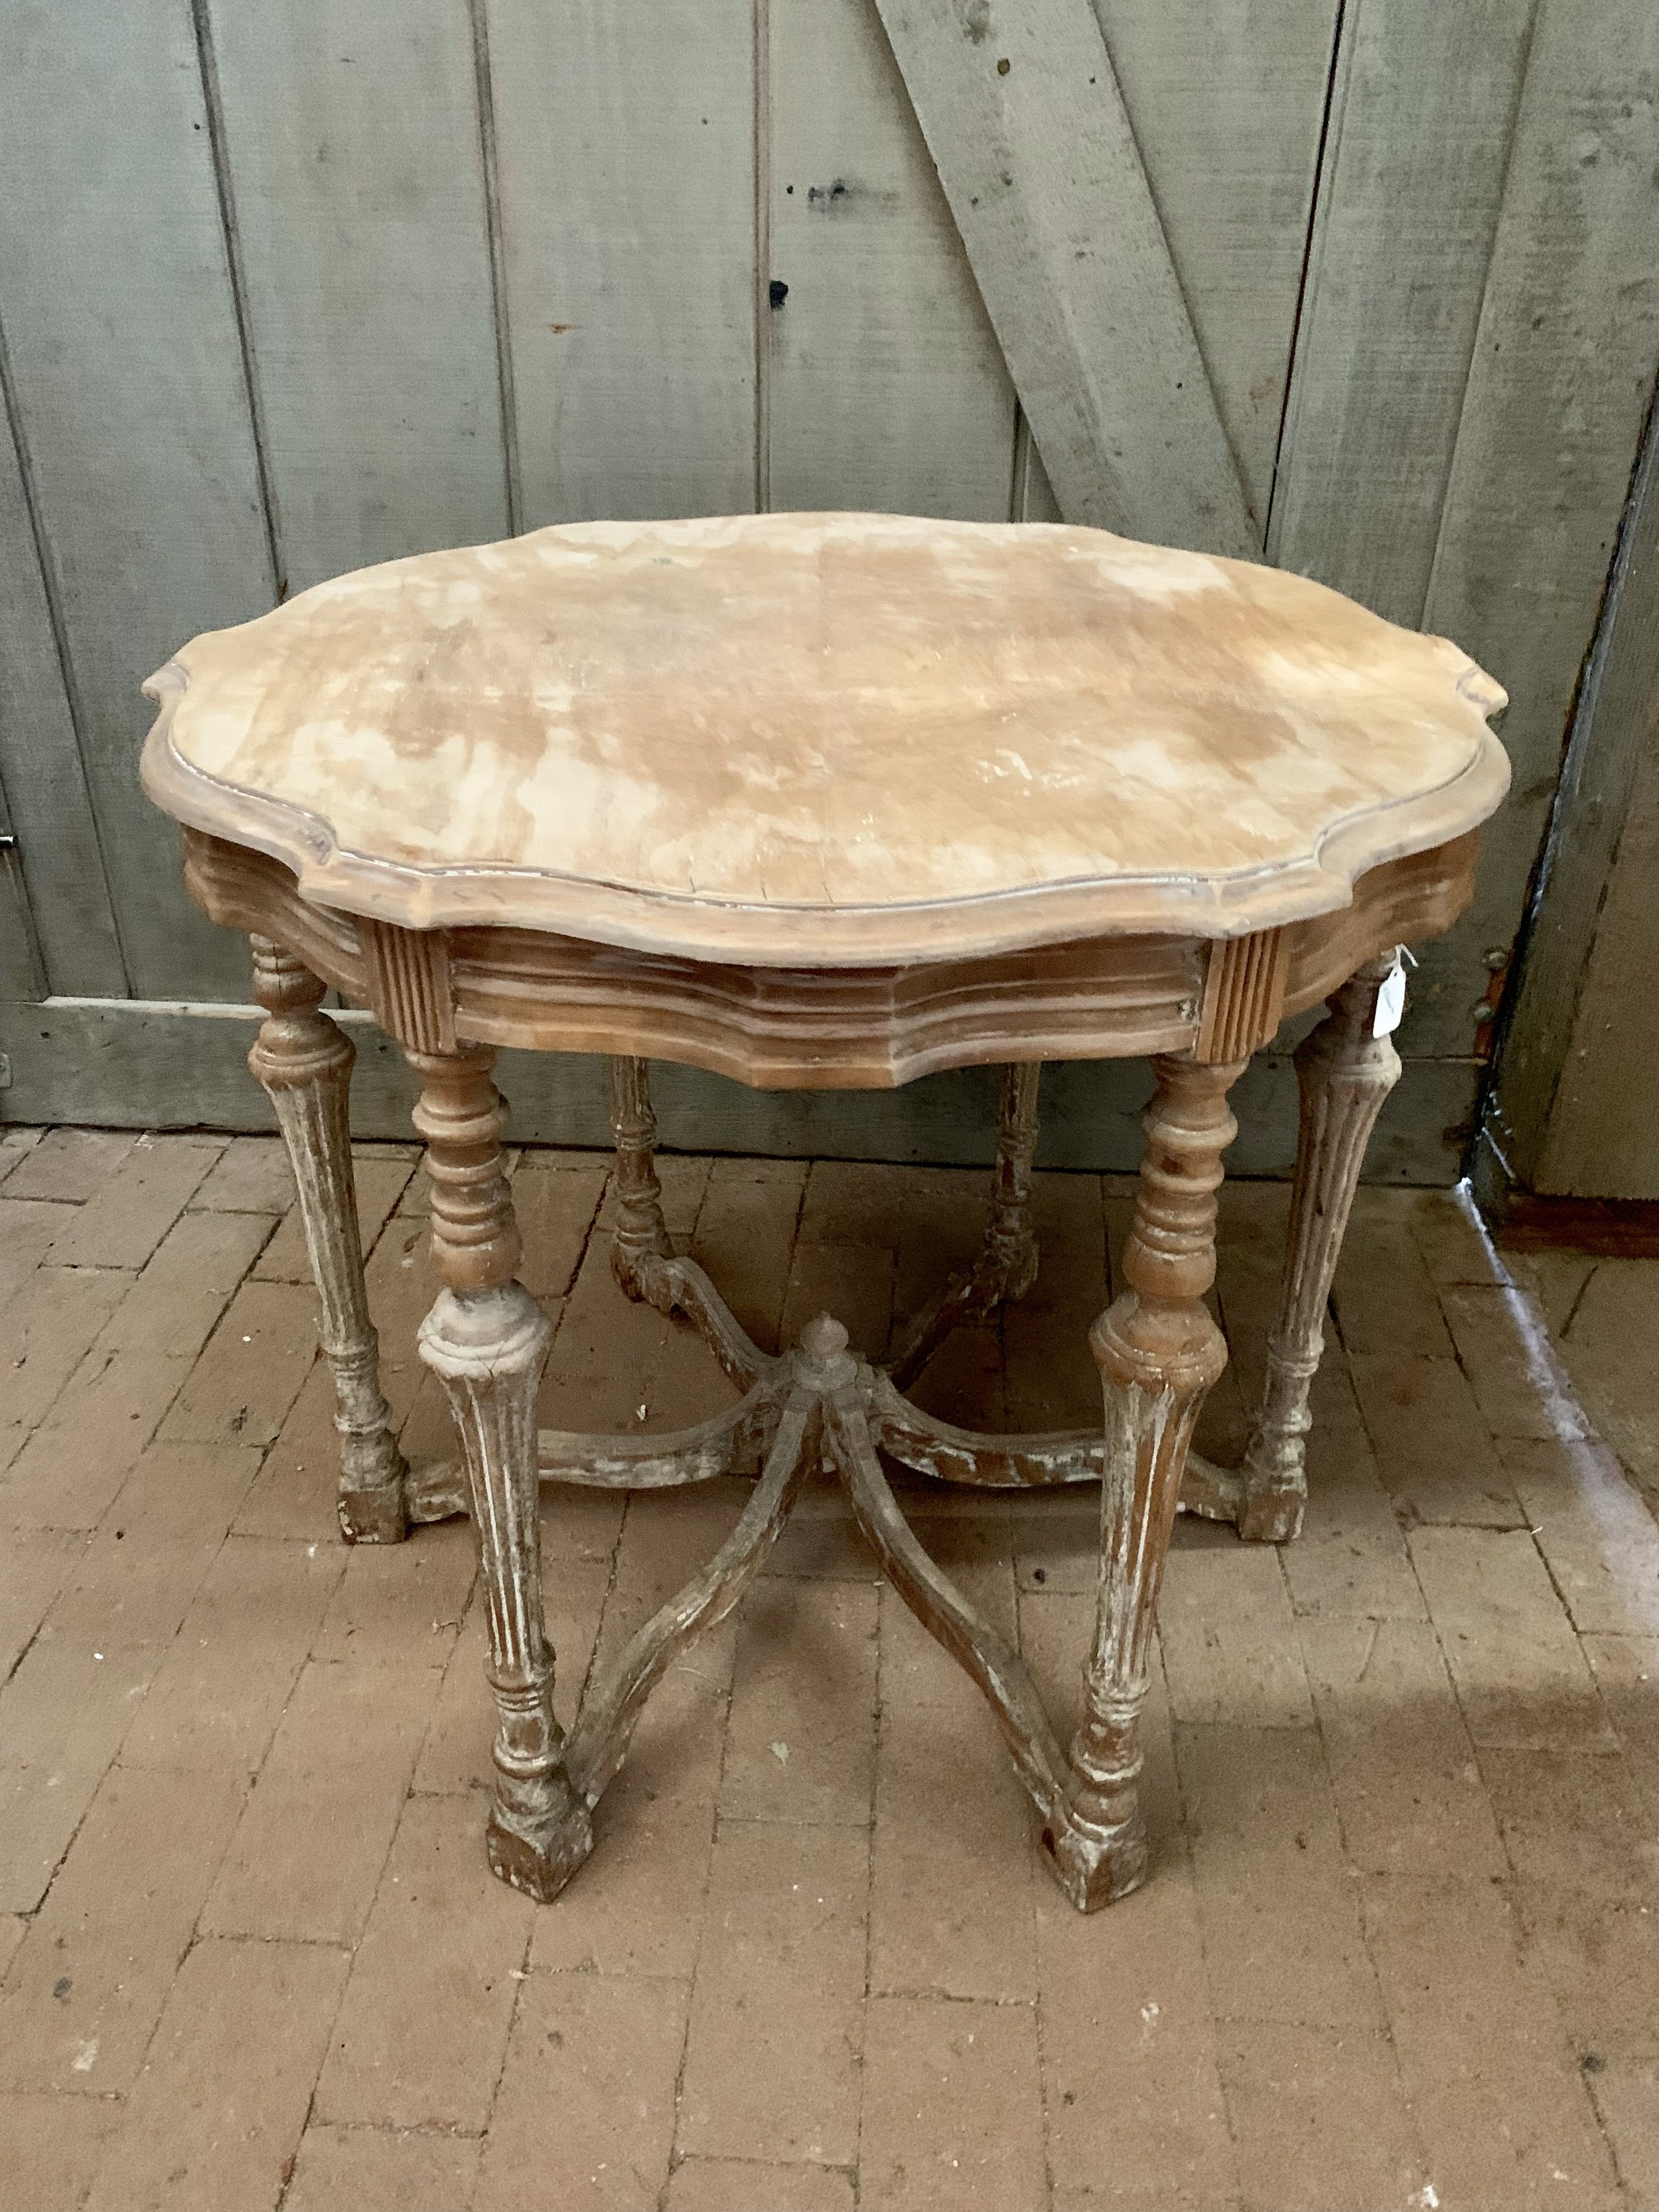 NATURAL ACCENT TABLE - $35